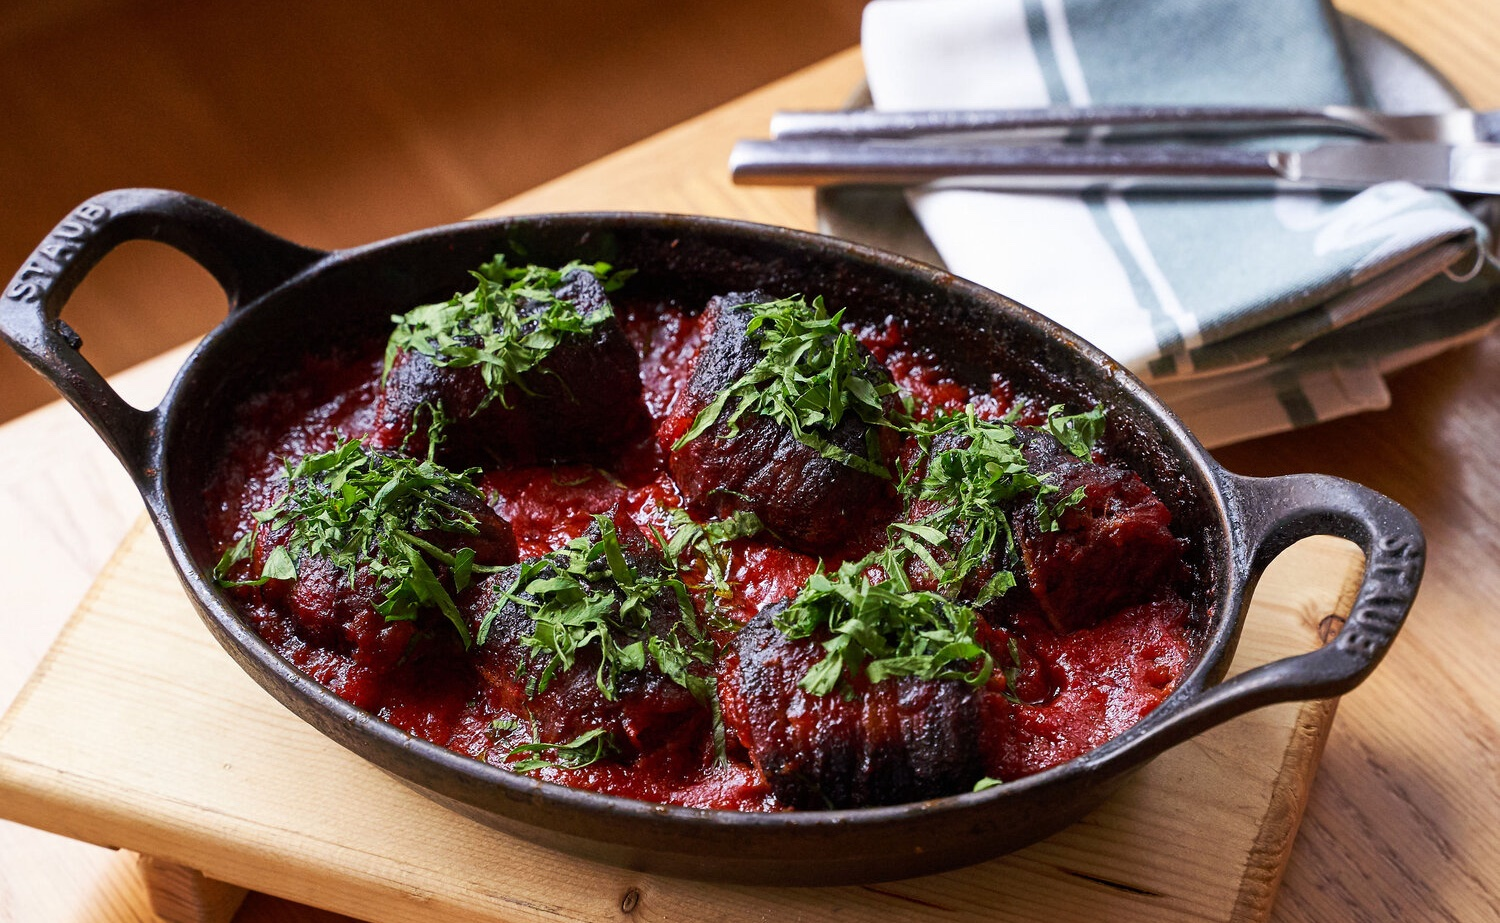 Six dates sitting in red sauce in a cast iron skillet.